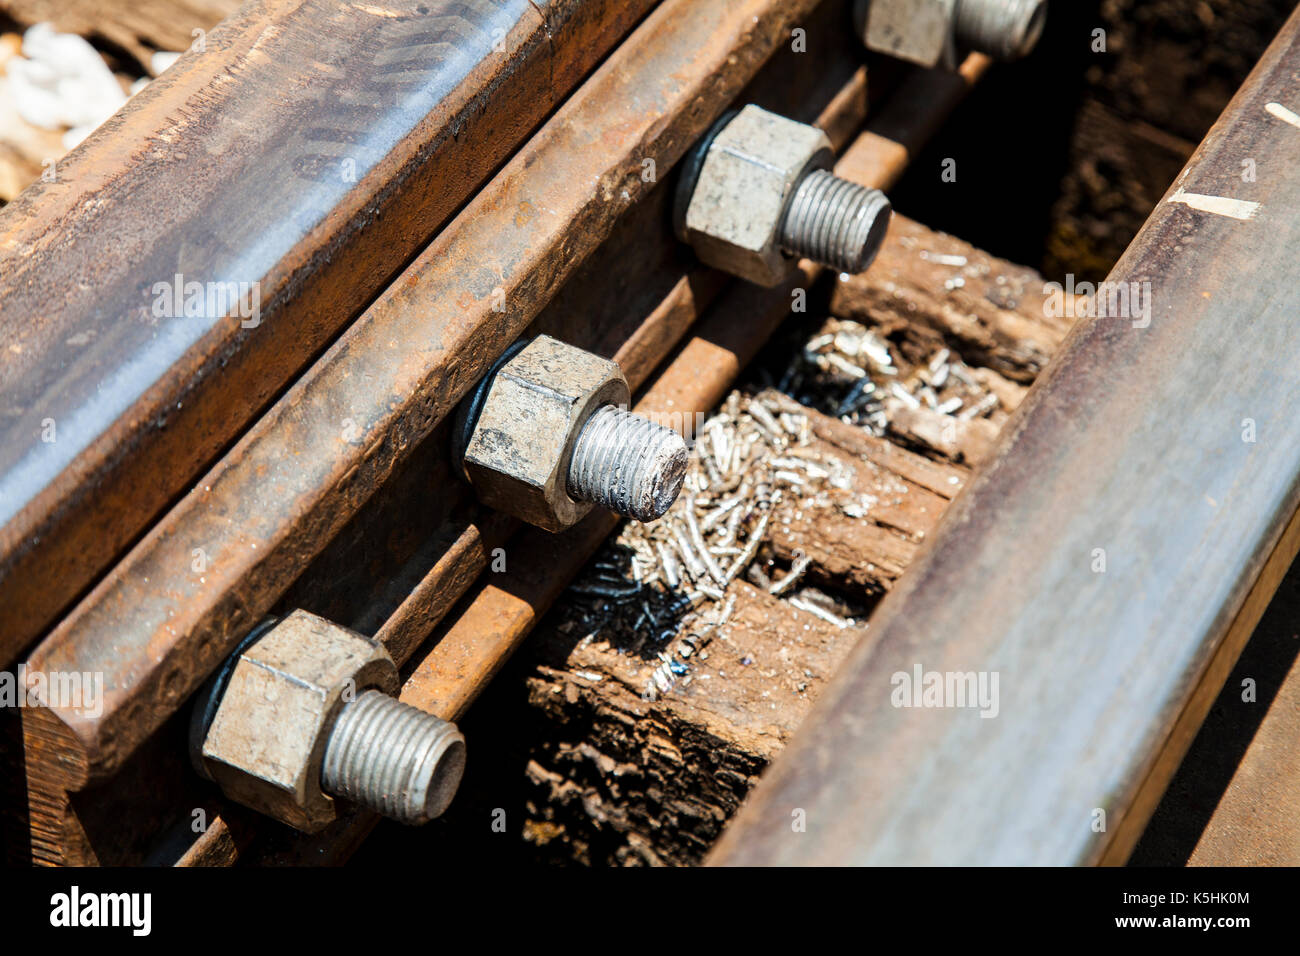 The death railway bridge repairs.Tham krasae Kanchanaburi Thailand. - Stock Image